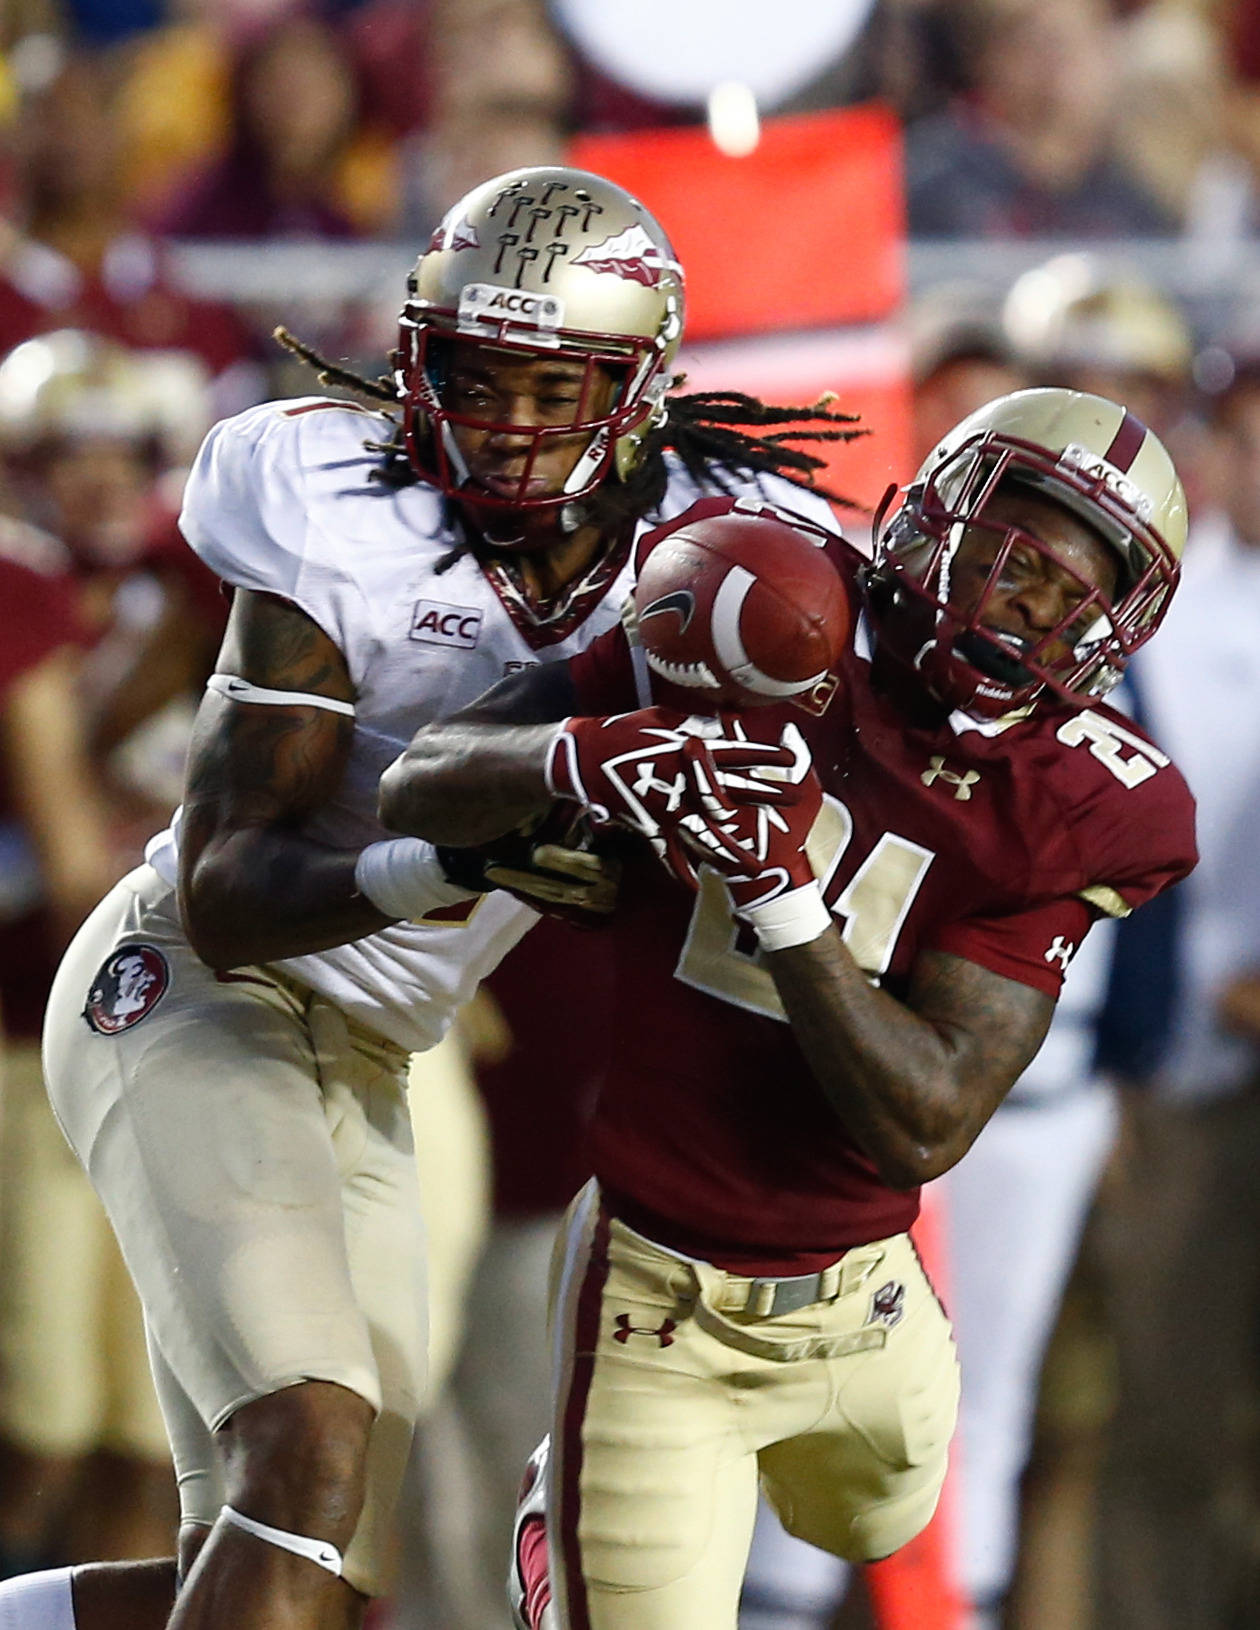 Sep 28, 2013; Boston, MA, USA; Boston College Eagles defensive back Manuel Asprilla (21) deflects the ball away from Florida State Seminoles wide receiver Kelvin Benjamin (1) during the second half at Alumni Stadium. Mandatory Credit: Mark L. Baer-USA TODAY Sports